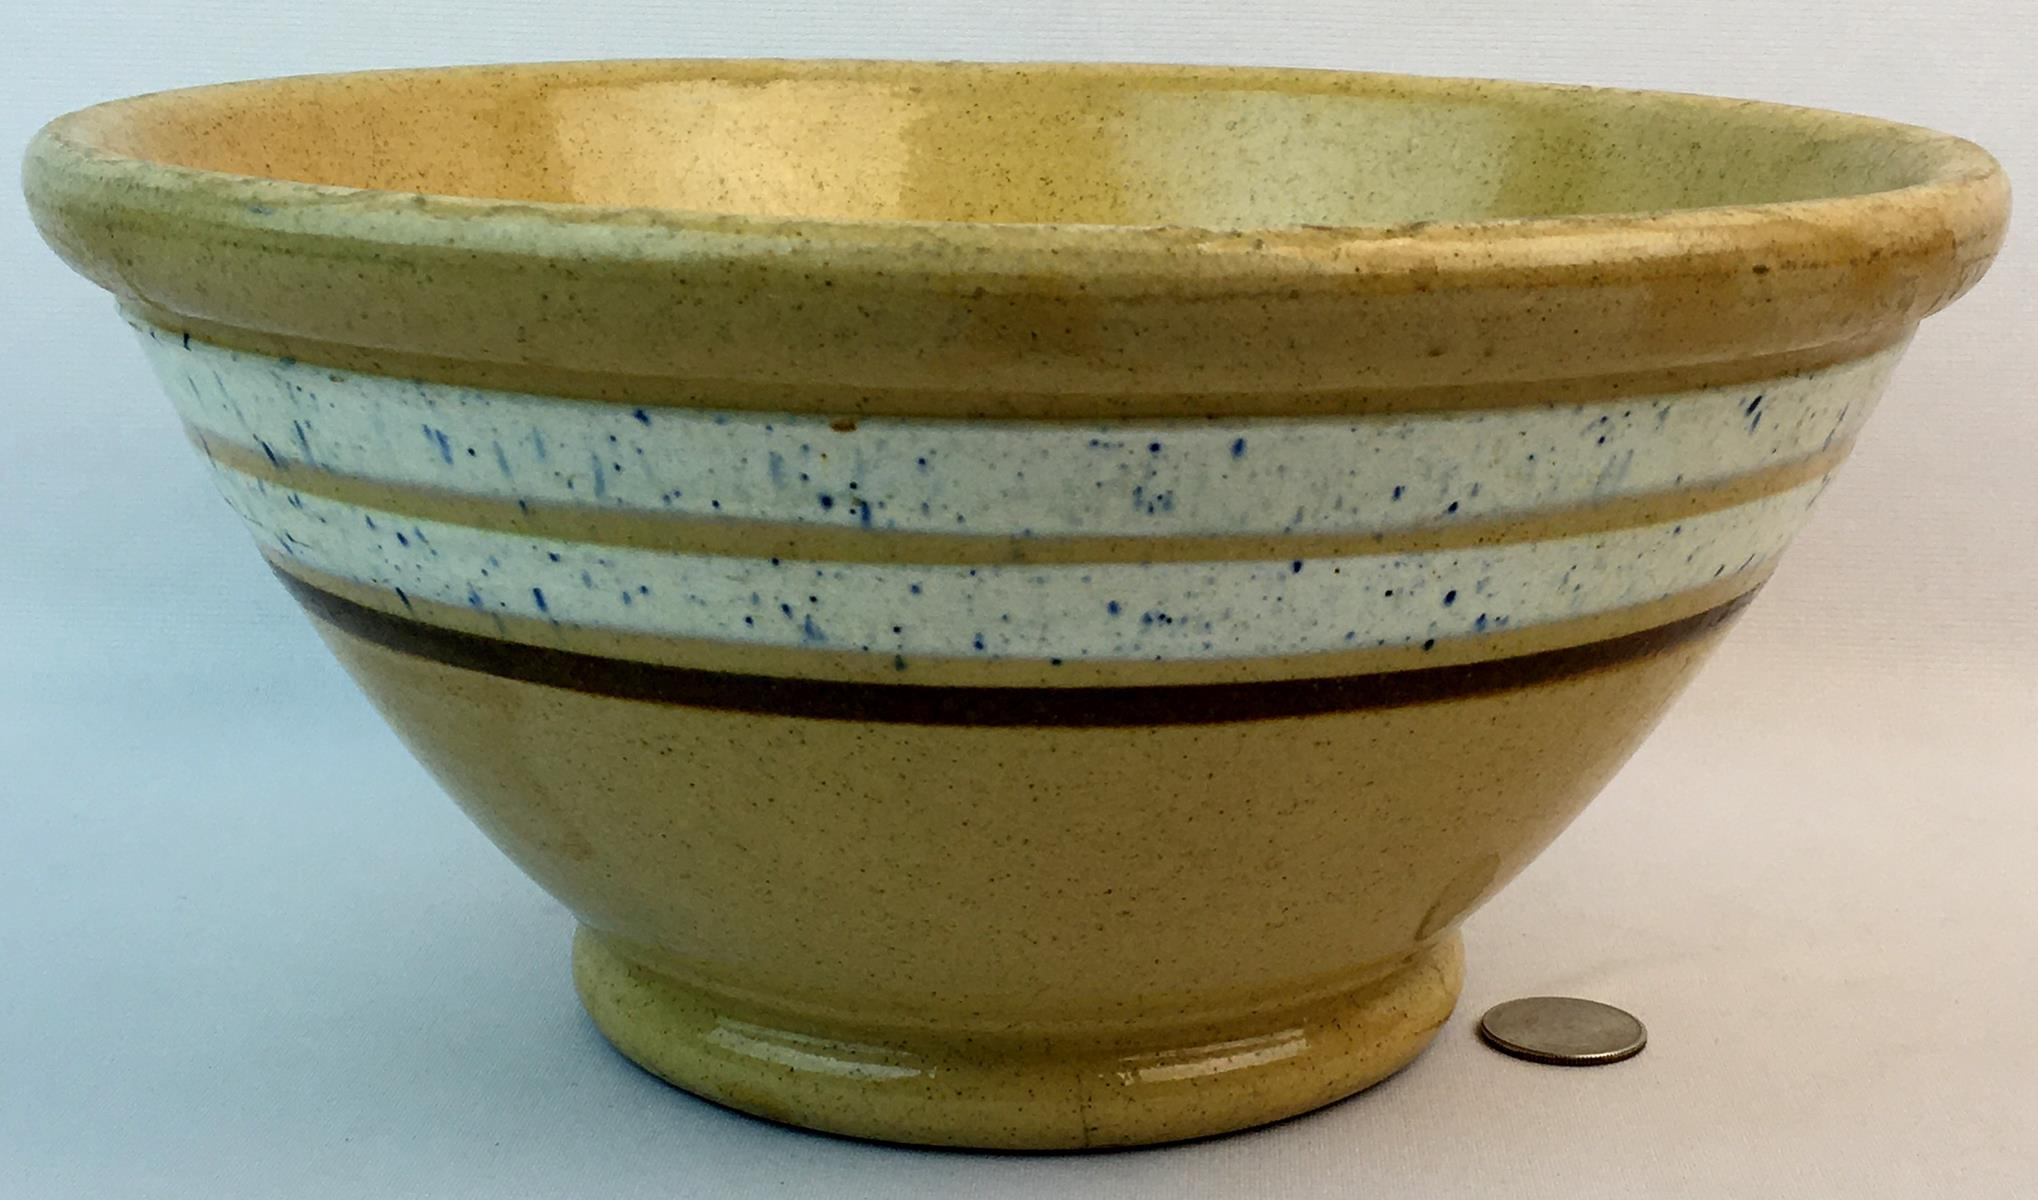 Antique 1800's Primitive Large 3 Brown and White with Blue Speckled Banded Yellowware Mixing Bowl